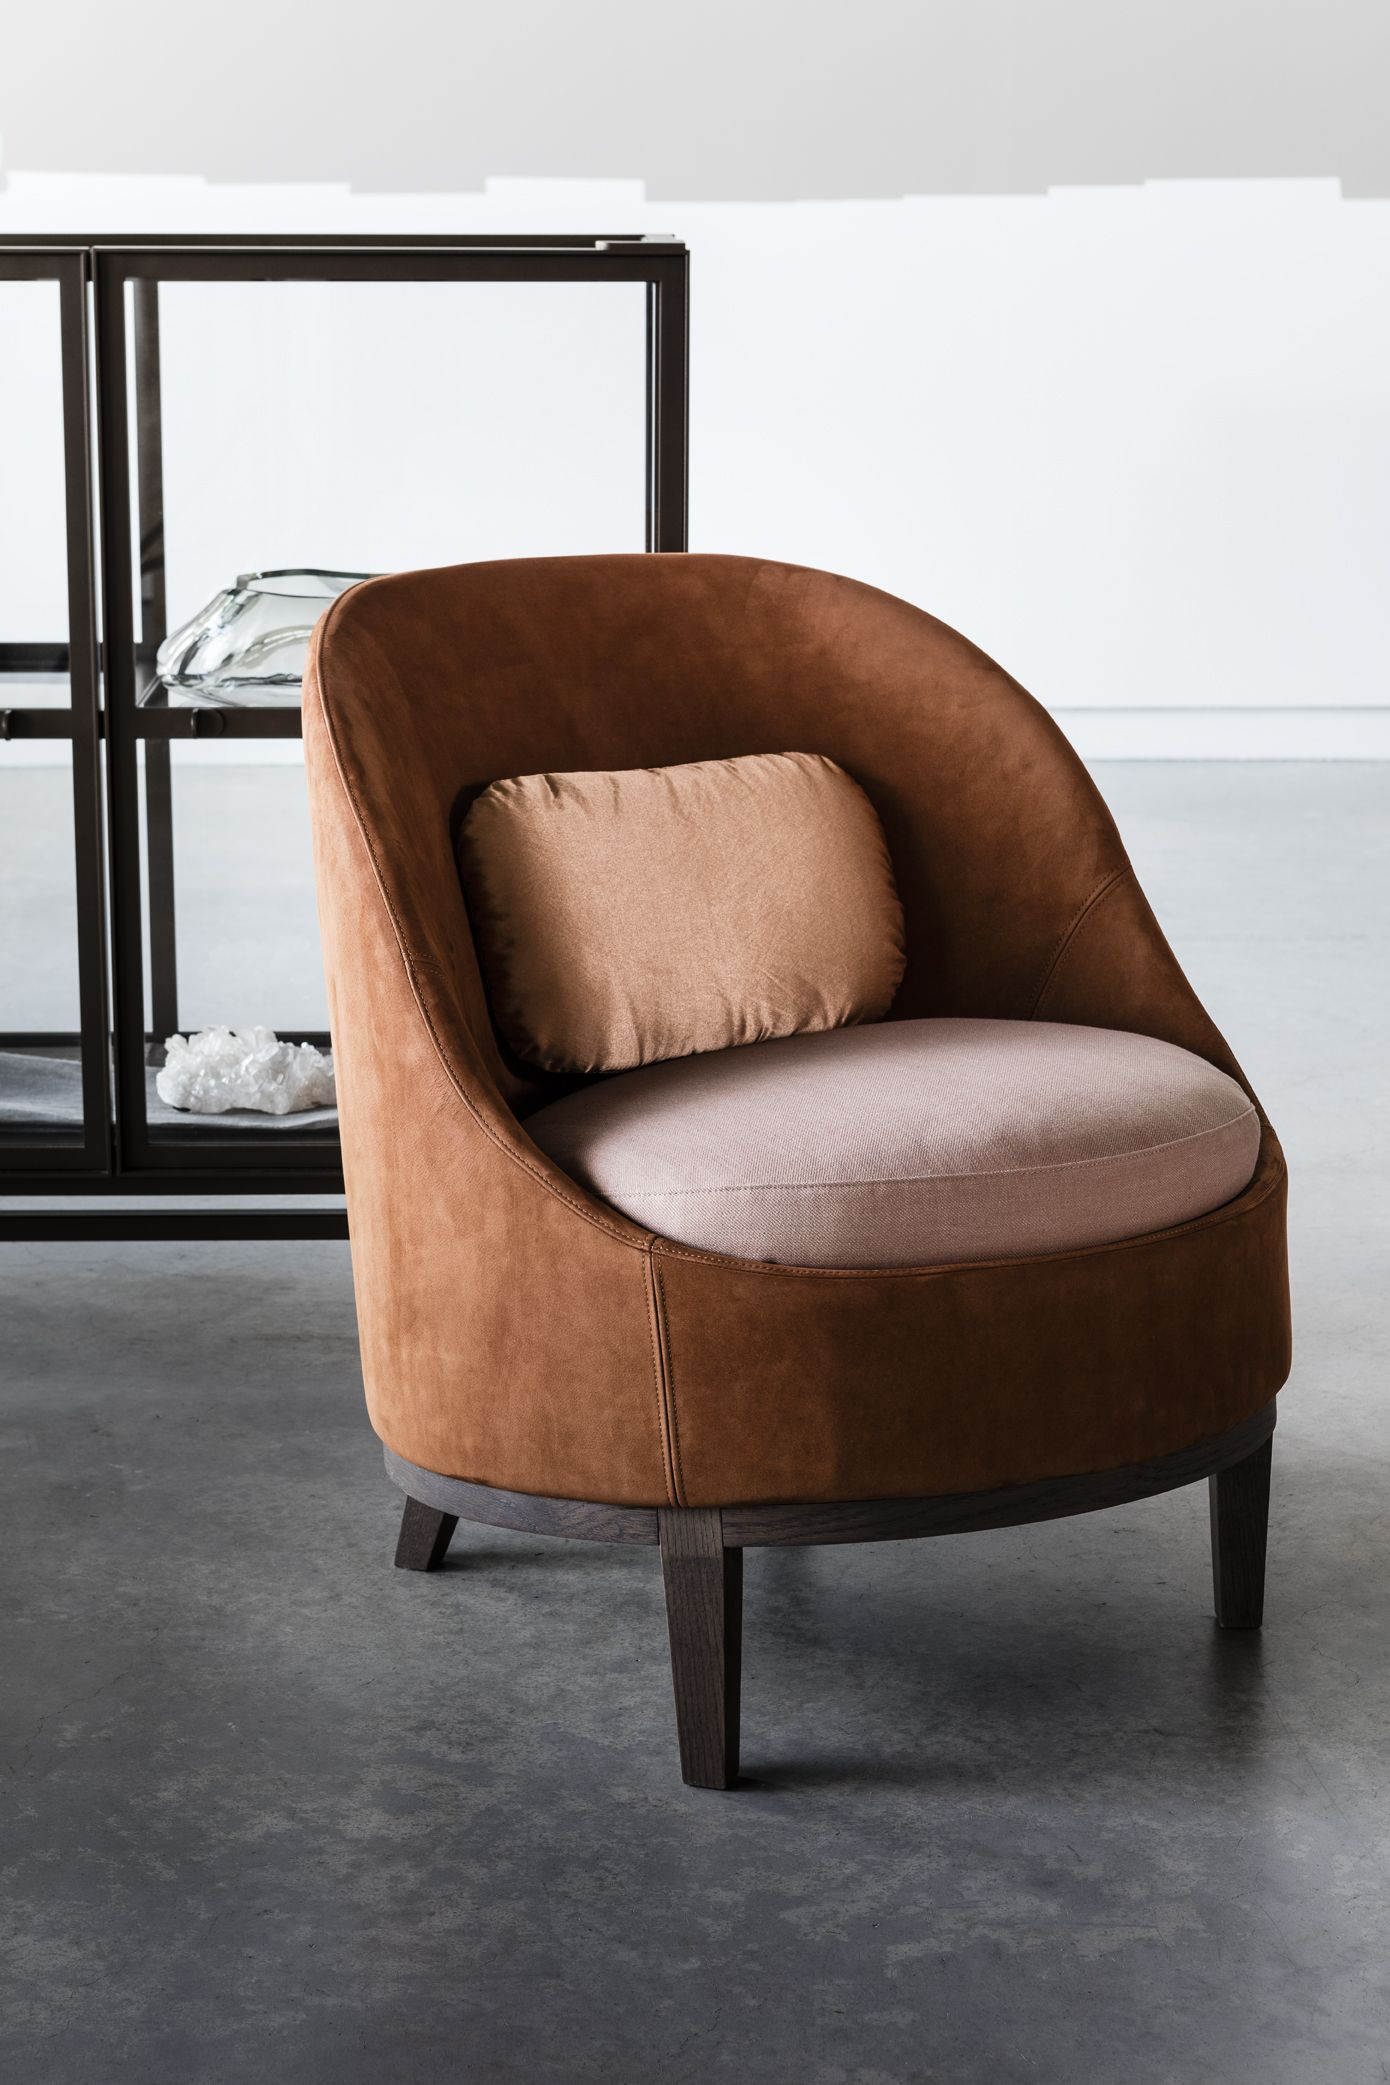 The Belle Armchair This Lush Low Seater Is Modest In Size And Unstinting In Proportion Makin Most Comfortable Office Chair Armchair Furniture Furniture Chair